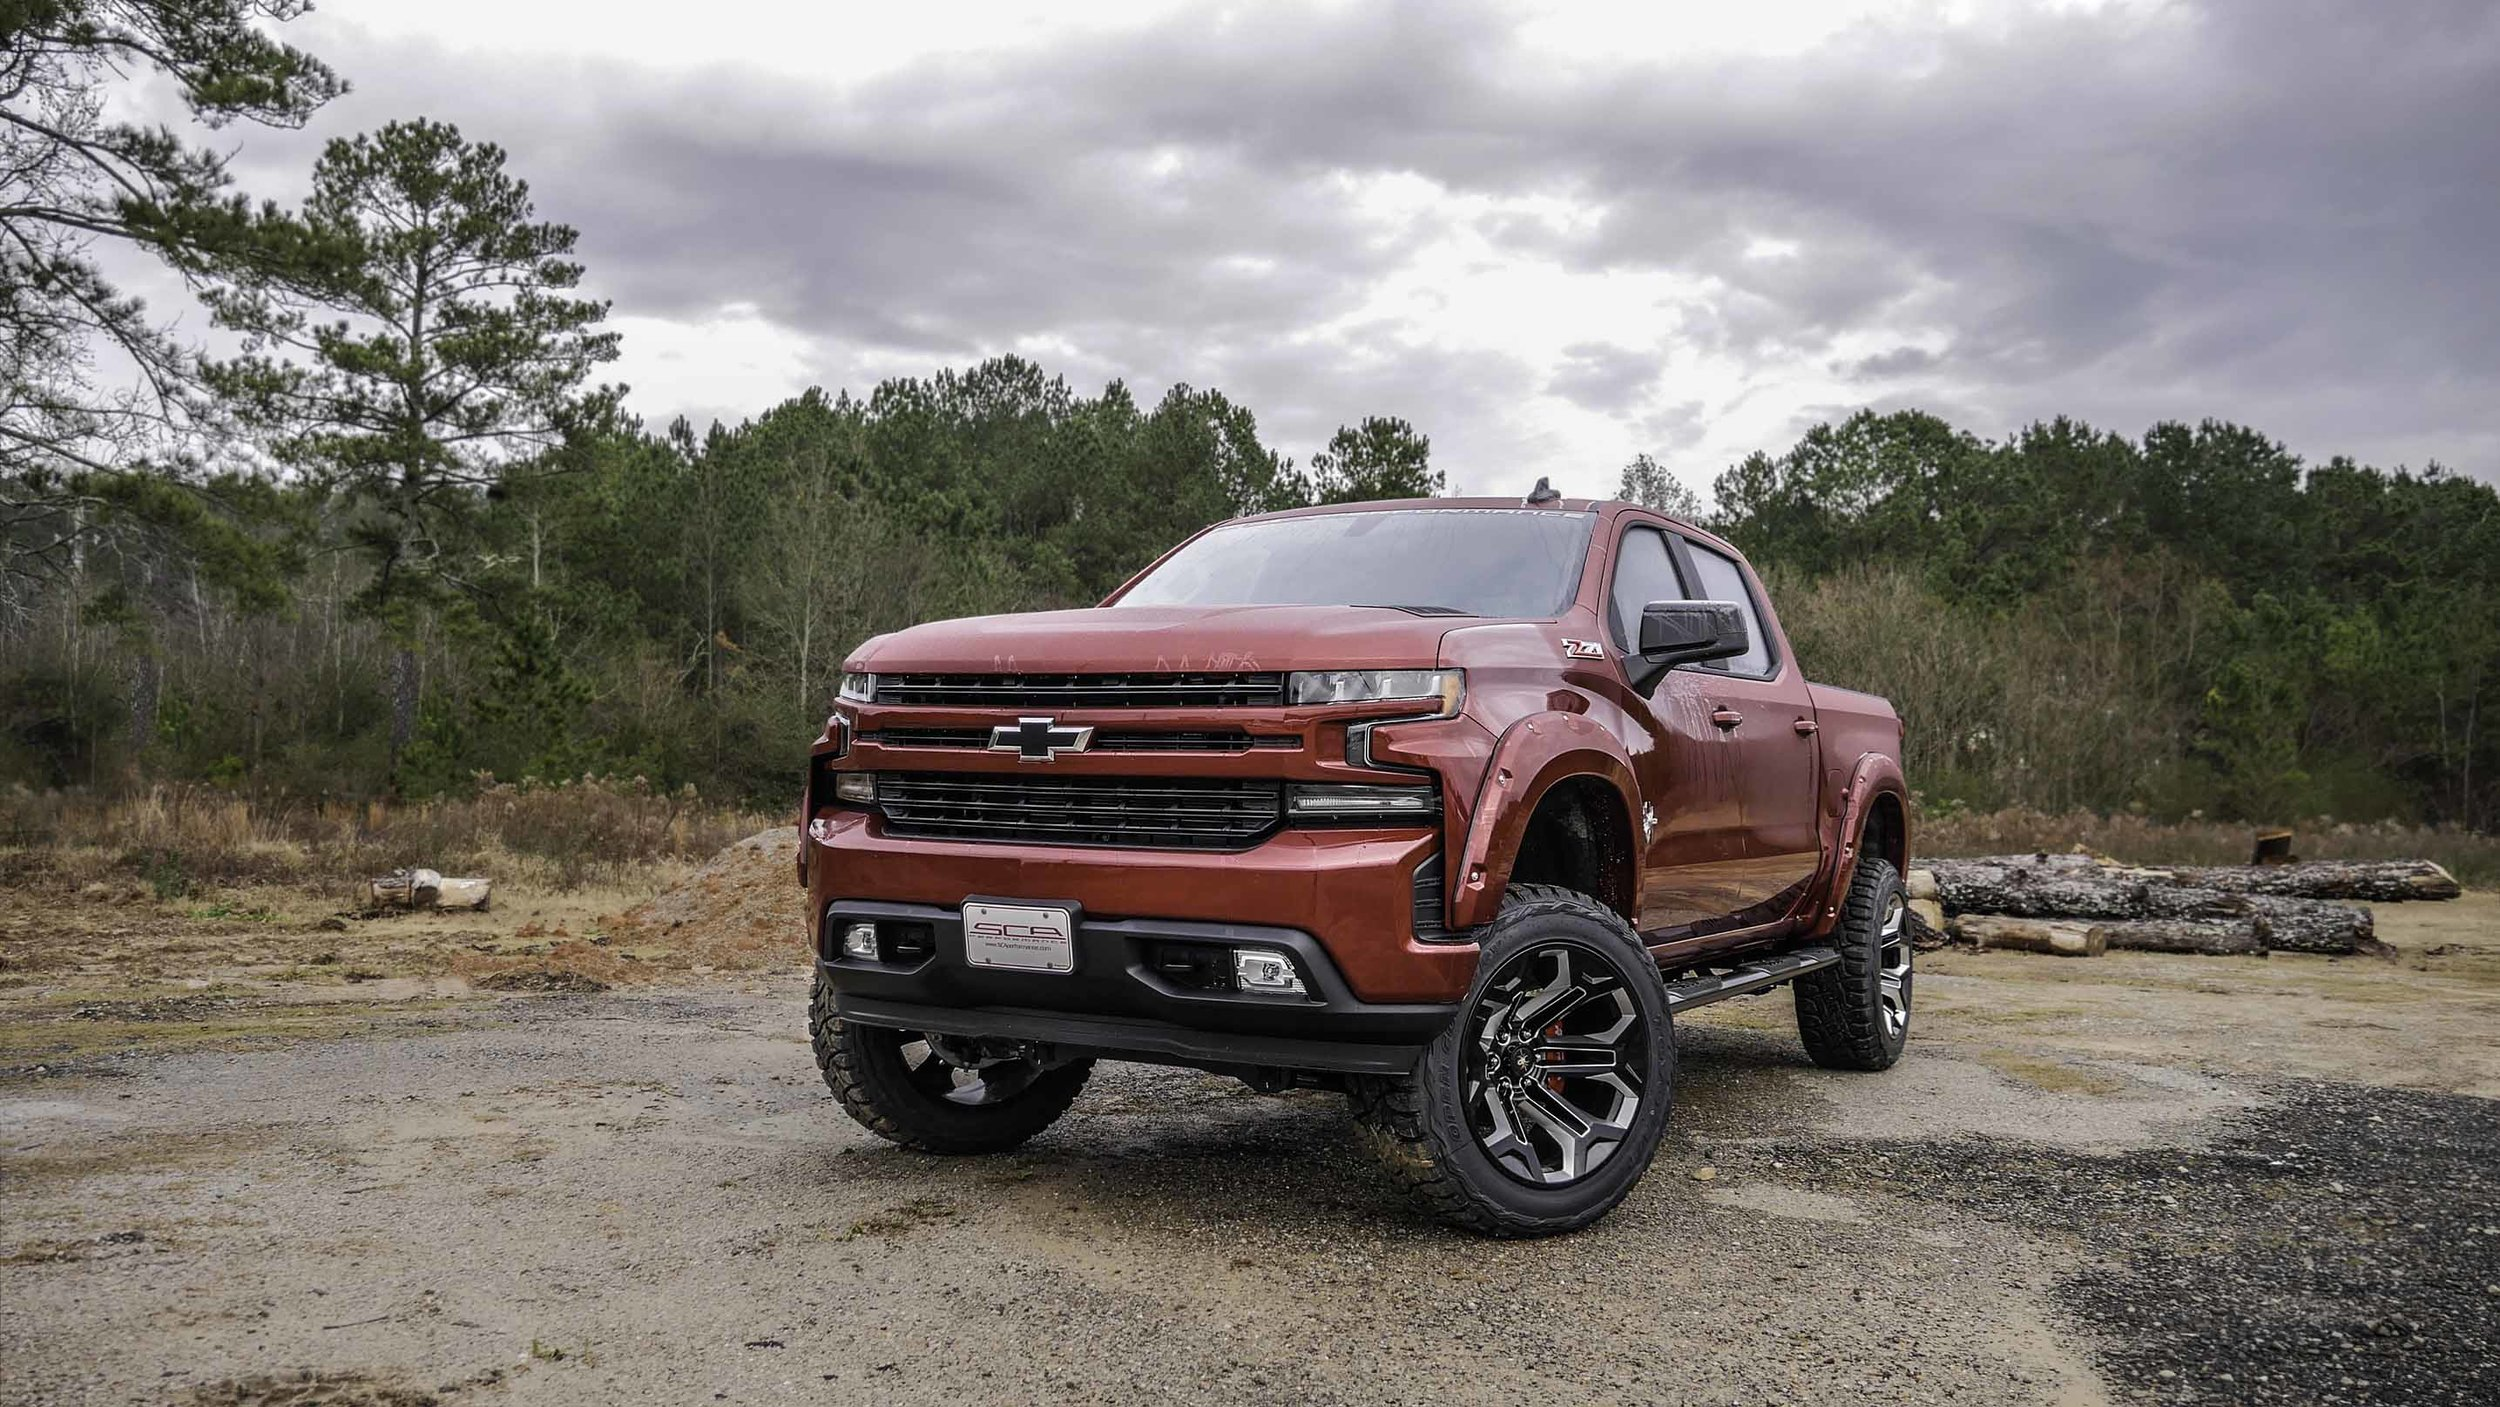 2019 Chevy Black Widow Cajun Red with 22s Small.jpg